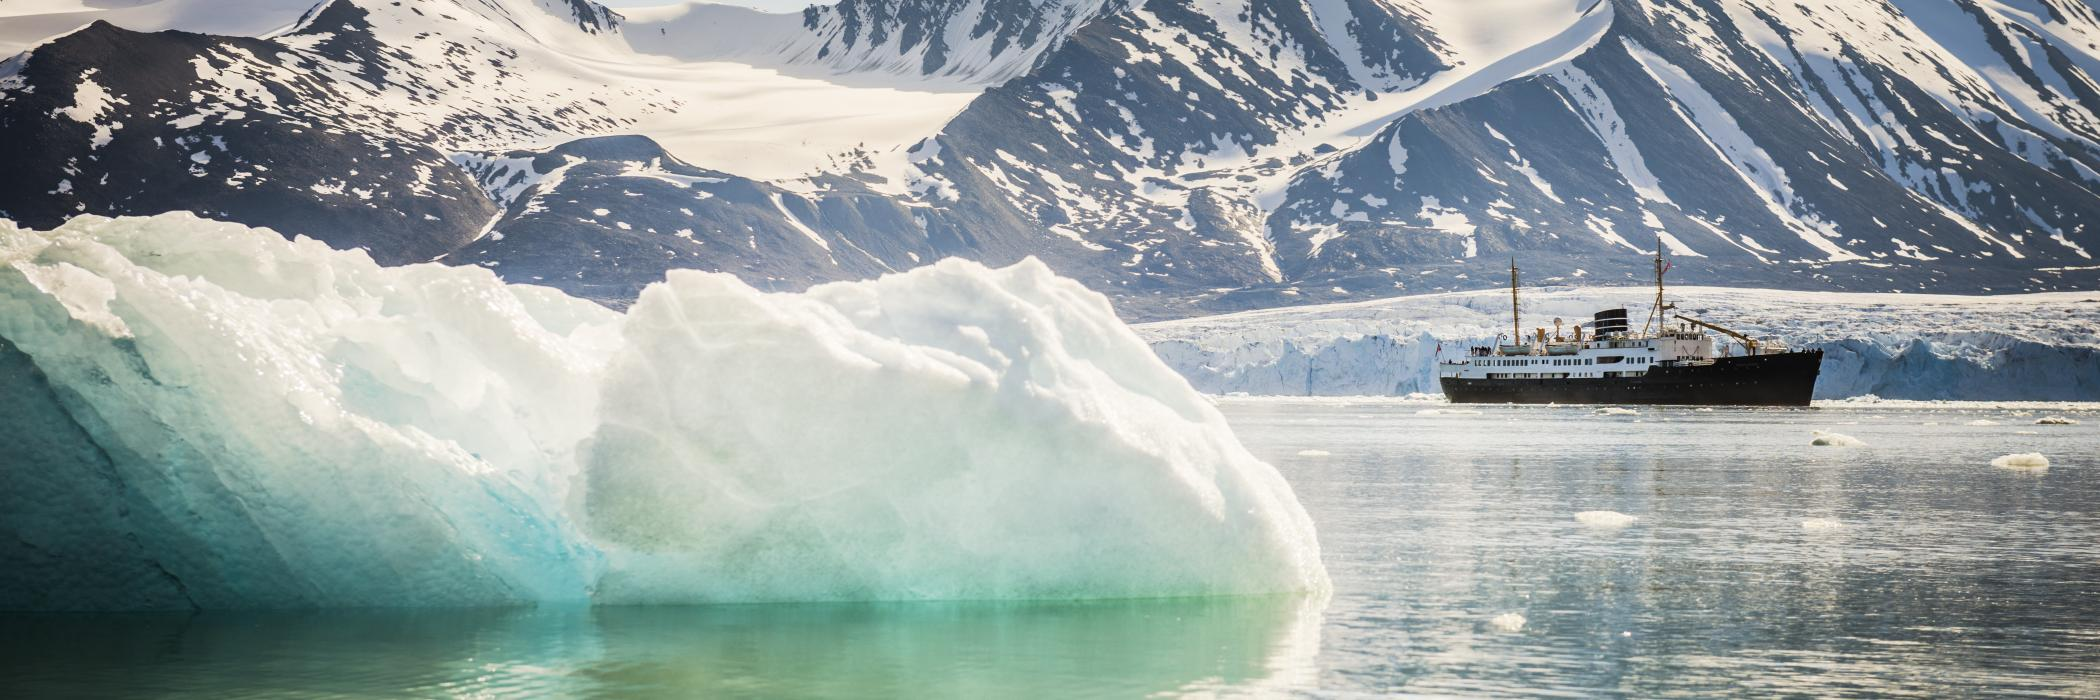 The Arctic Ocean near Spitzbergen, Norway: effective governance mechanisms must be put in place to ensure that the economic development of oceans, coasts, and sensitive regions like the Arctic is sustainable.